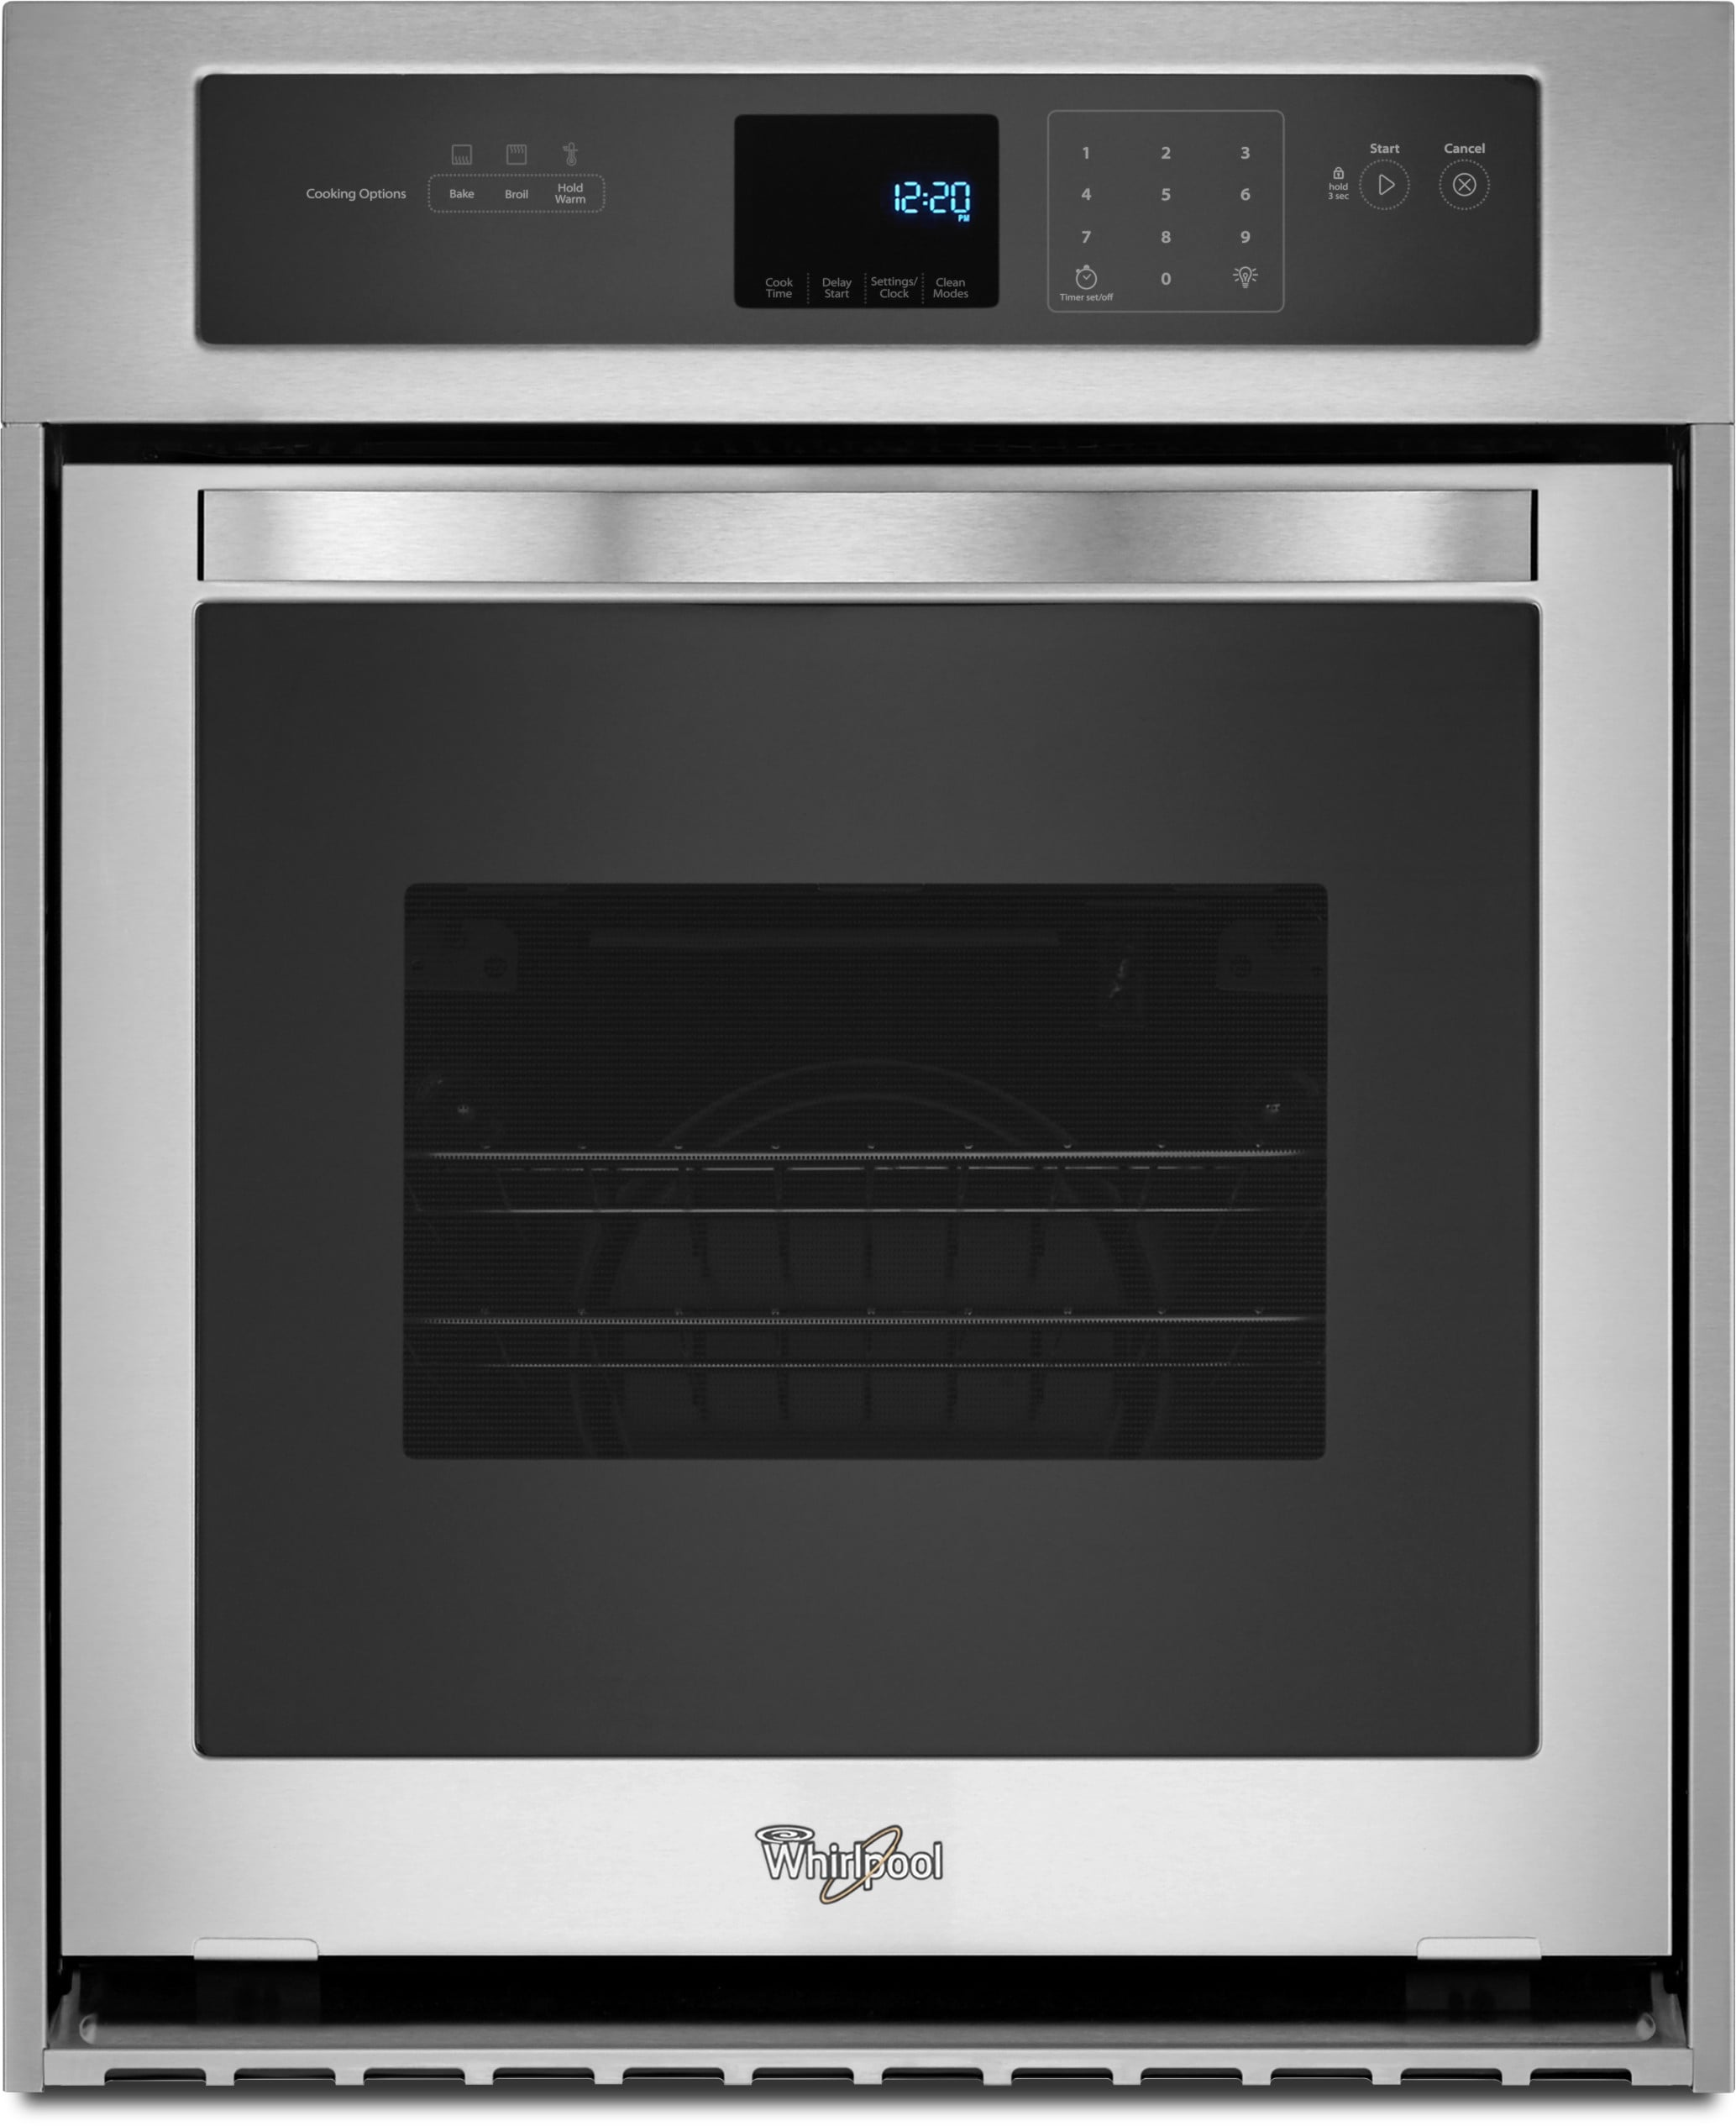 Whirlpool white ice double wall oven - Whirlpool Wos51es4es 24 Inch Single Electric Wall Oven With 3 1 Cu Ft Capacity 3600 Watt Broil Element High Heat Self Cleaning Mode Delay Cook Setting